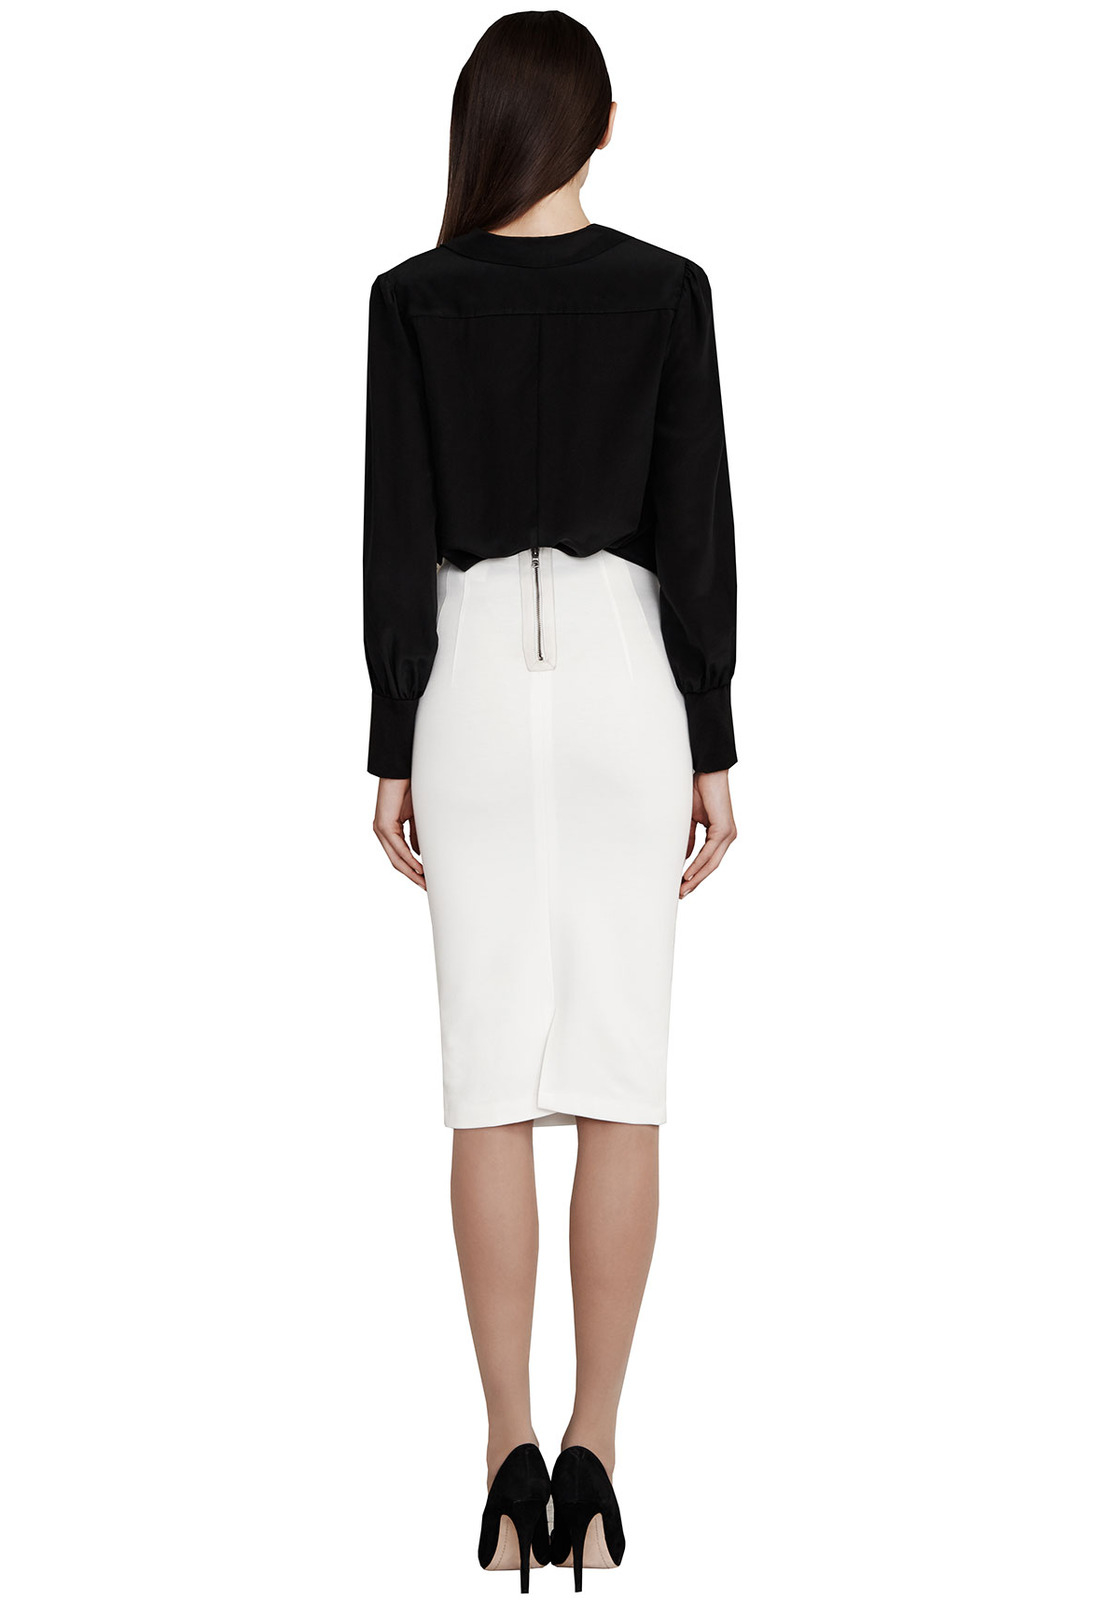 Alice   olivia Super High Waist Pencil Skirt in Natural | Lyst